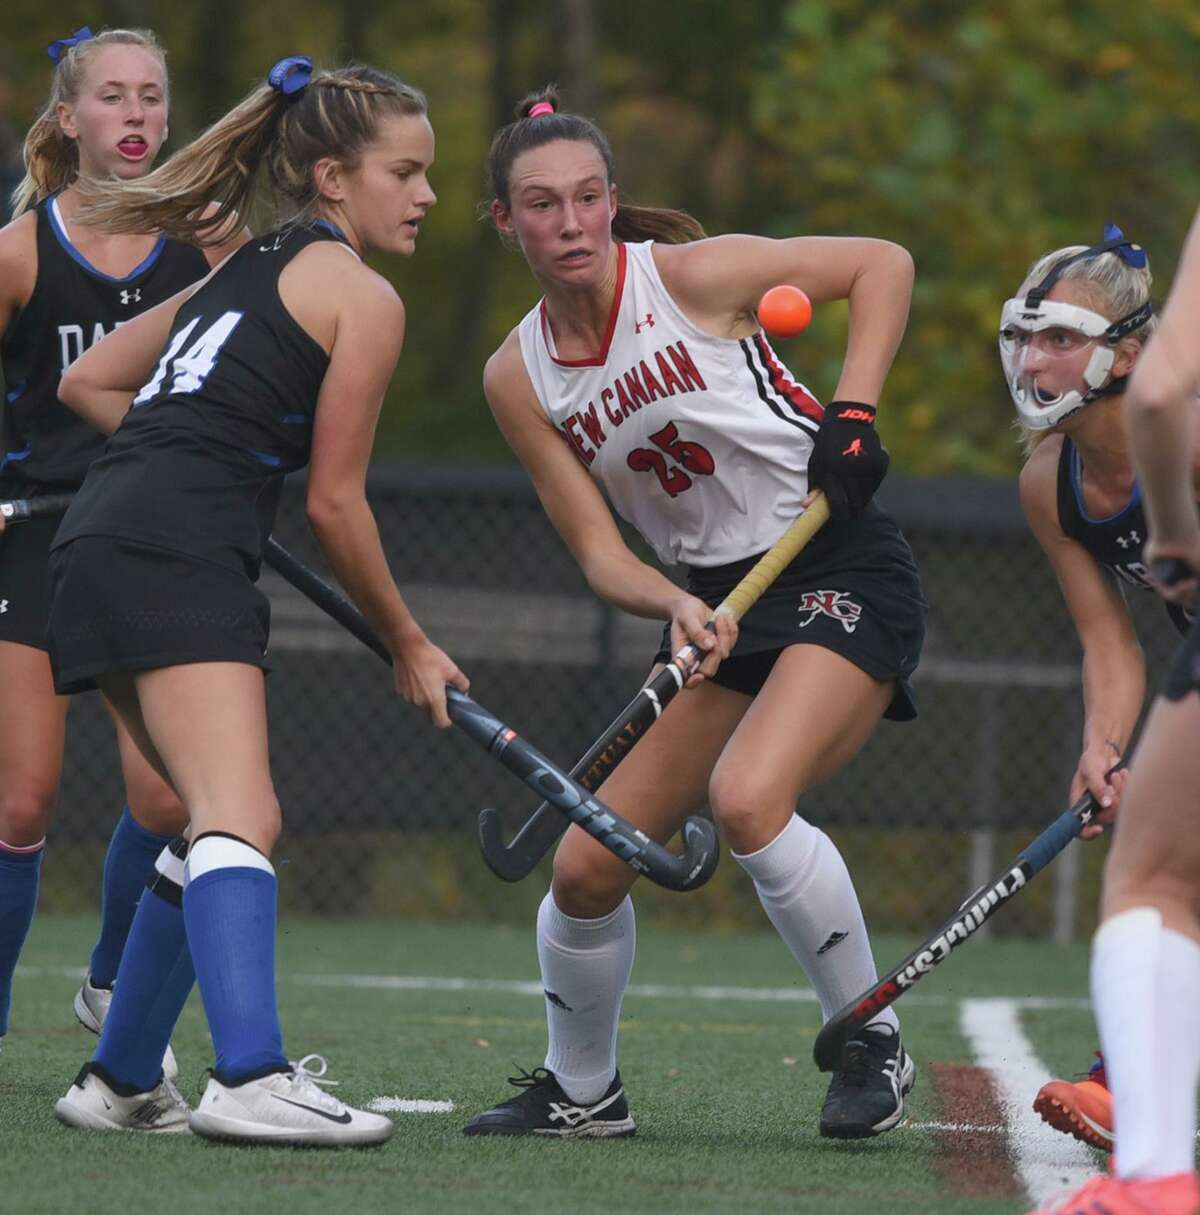 Darien's Emma Riley (14) and New Canaan's Polly Parsons (25) fight for the ball during a field hockey game at Dunning Field on Monday, Oct. 19, 2020.